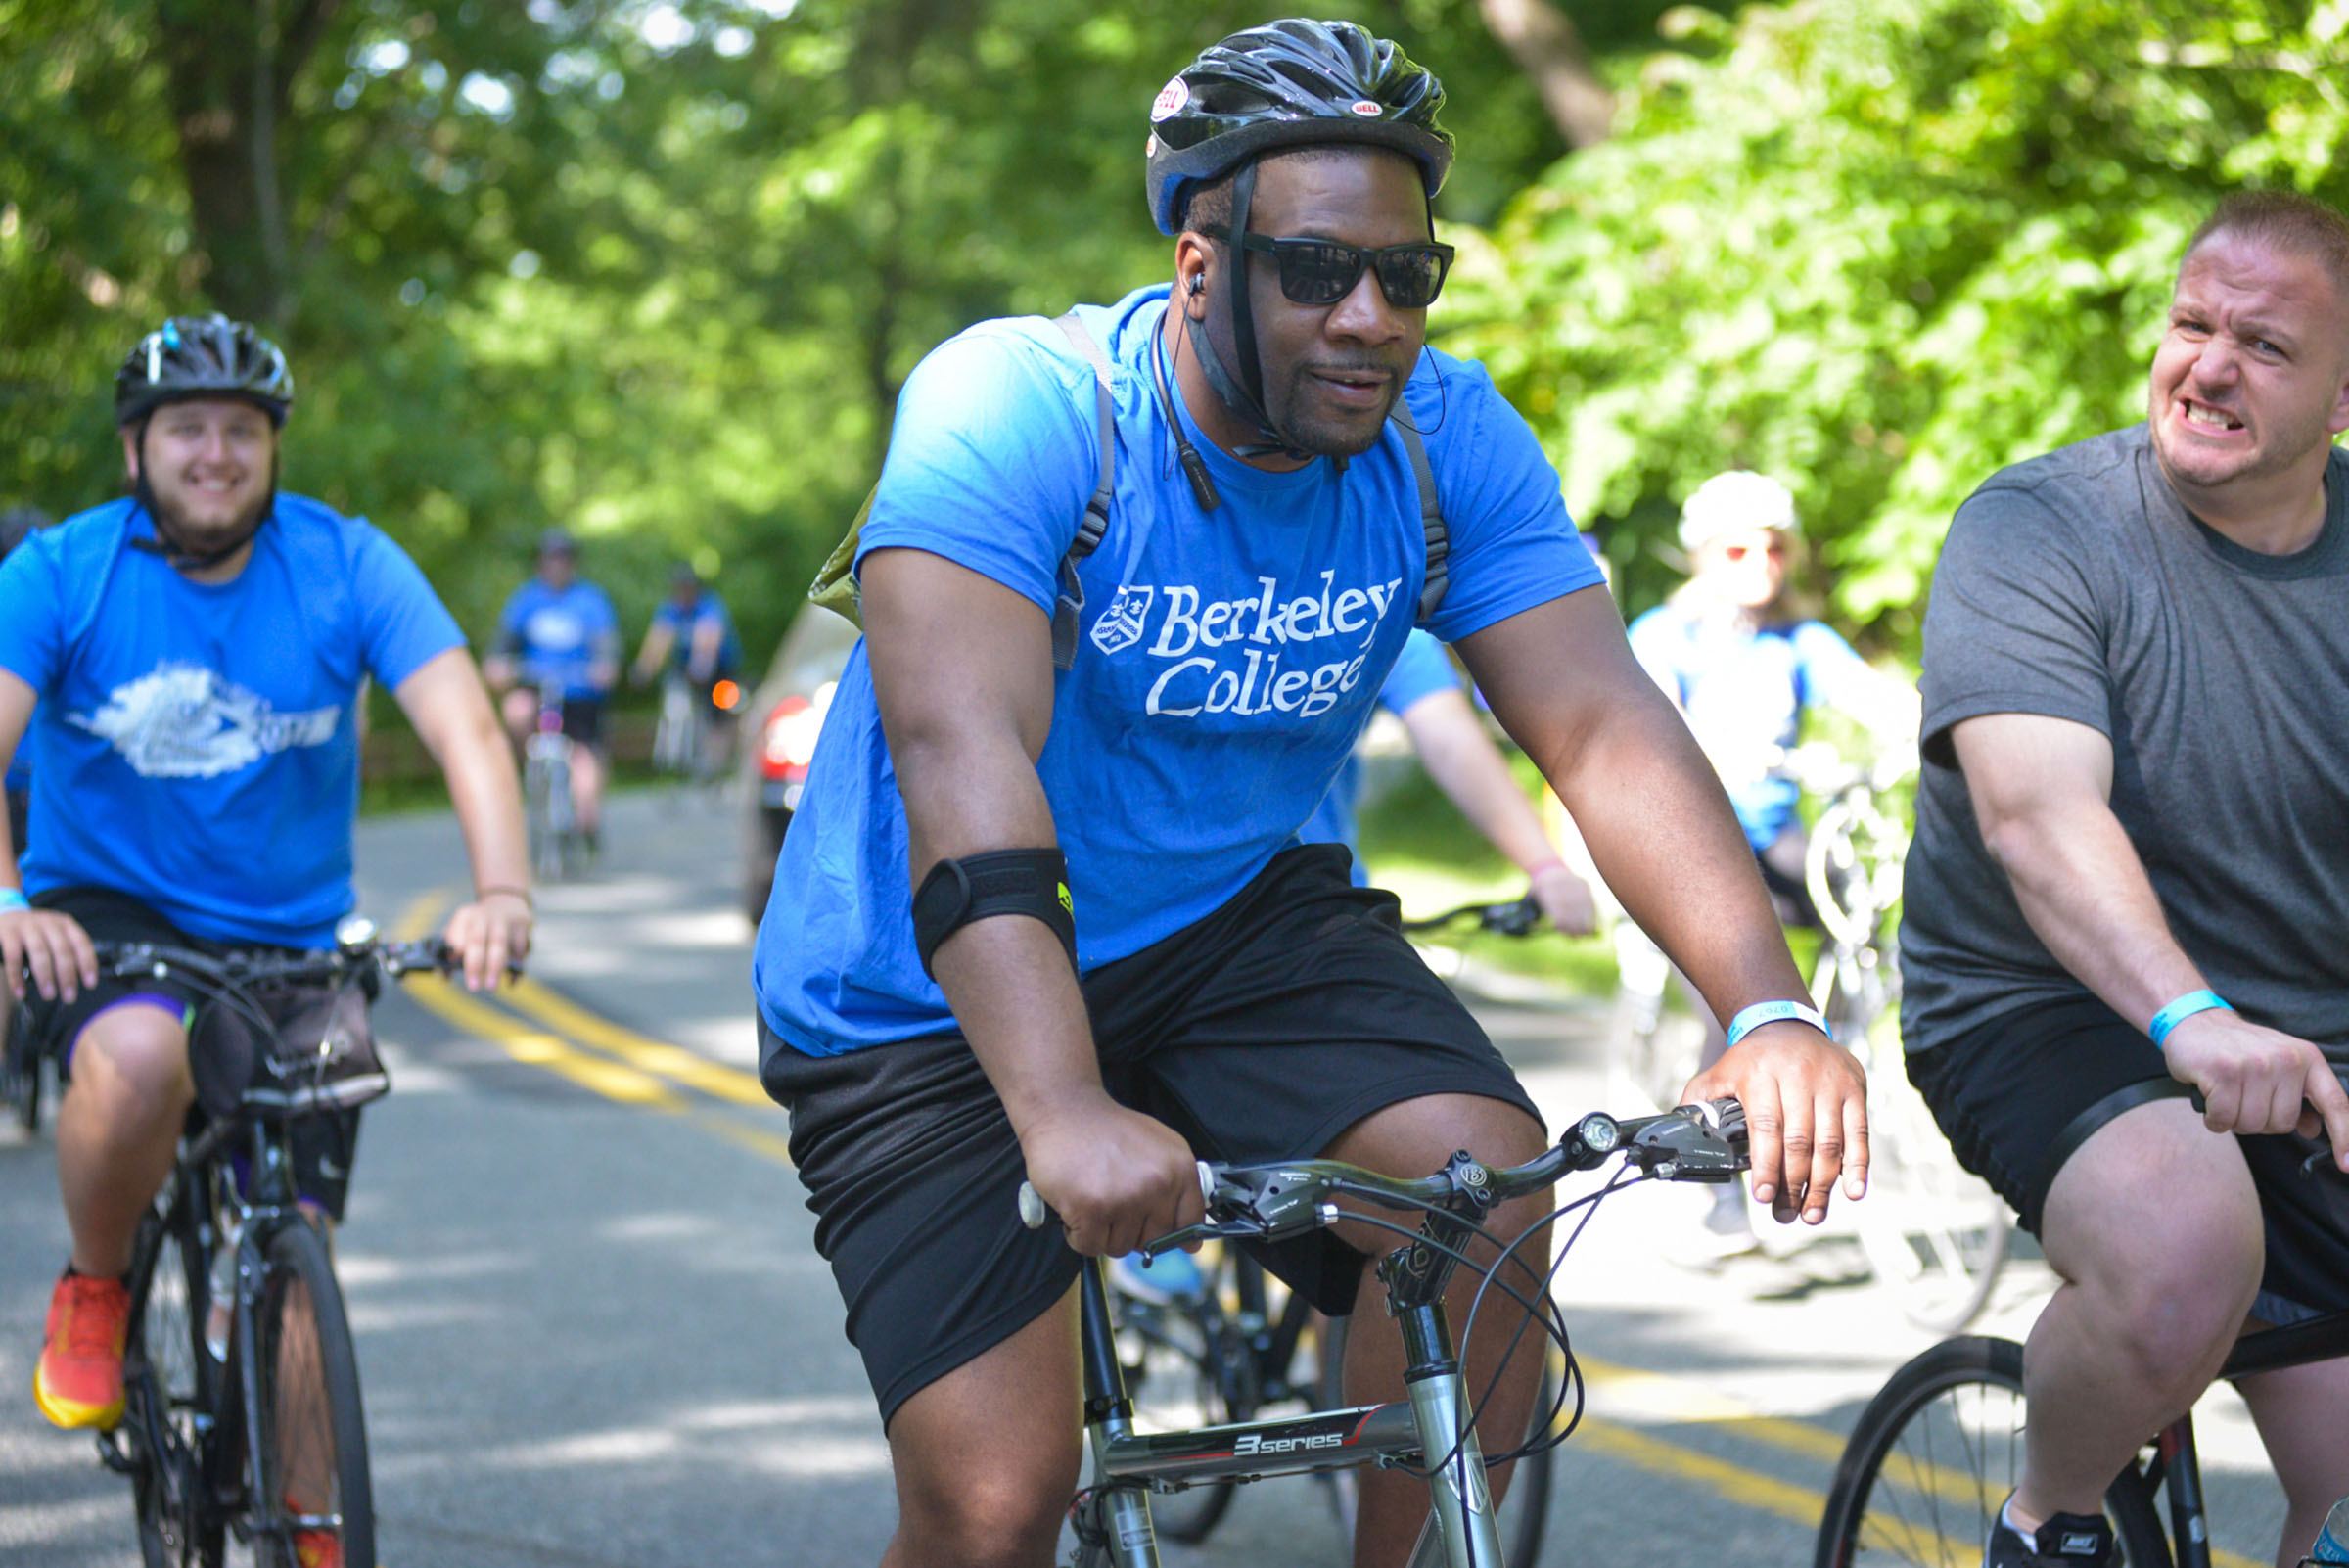 2017-06-04 GTD4A Charity Bike Ride - BCC - Paramus NJ-1966.jpg